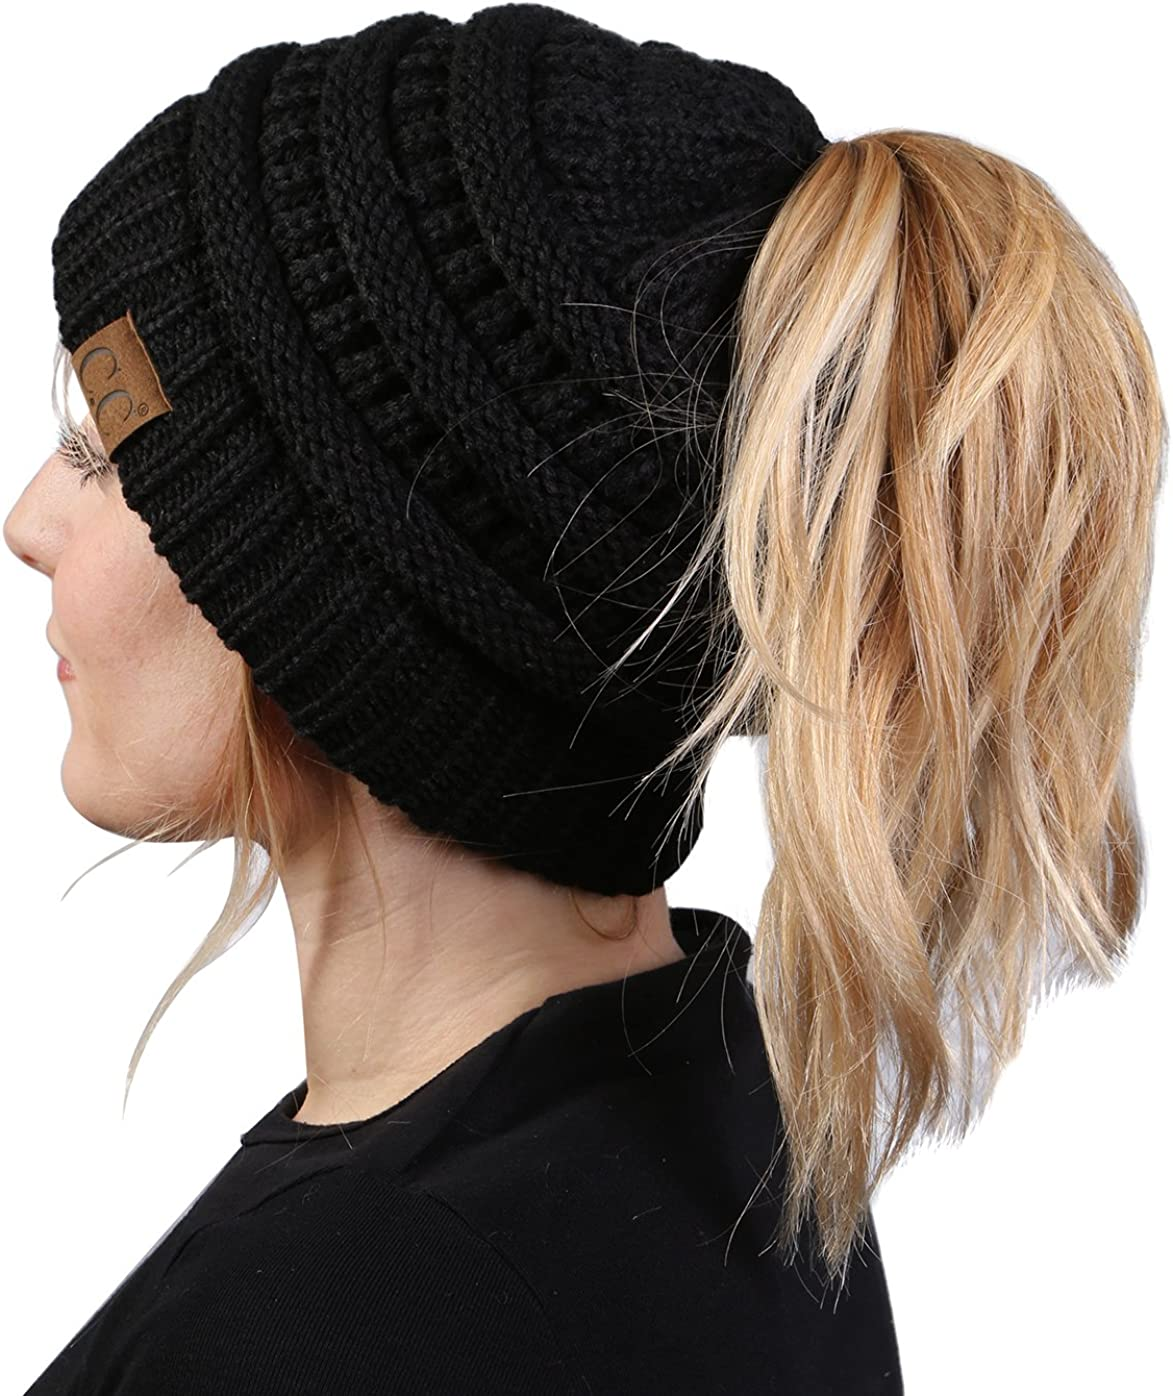 Funky Junque Ponytail Messy Bun Women's Max 40% OFF Max 68% OFF Solid Beanie BeanieTail